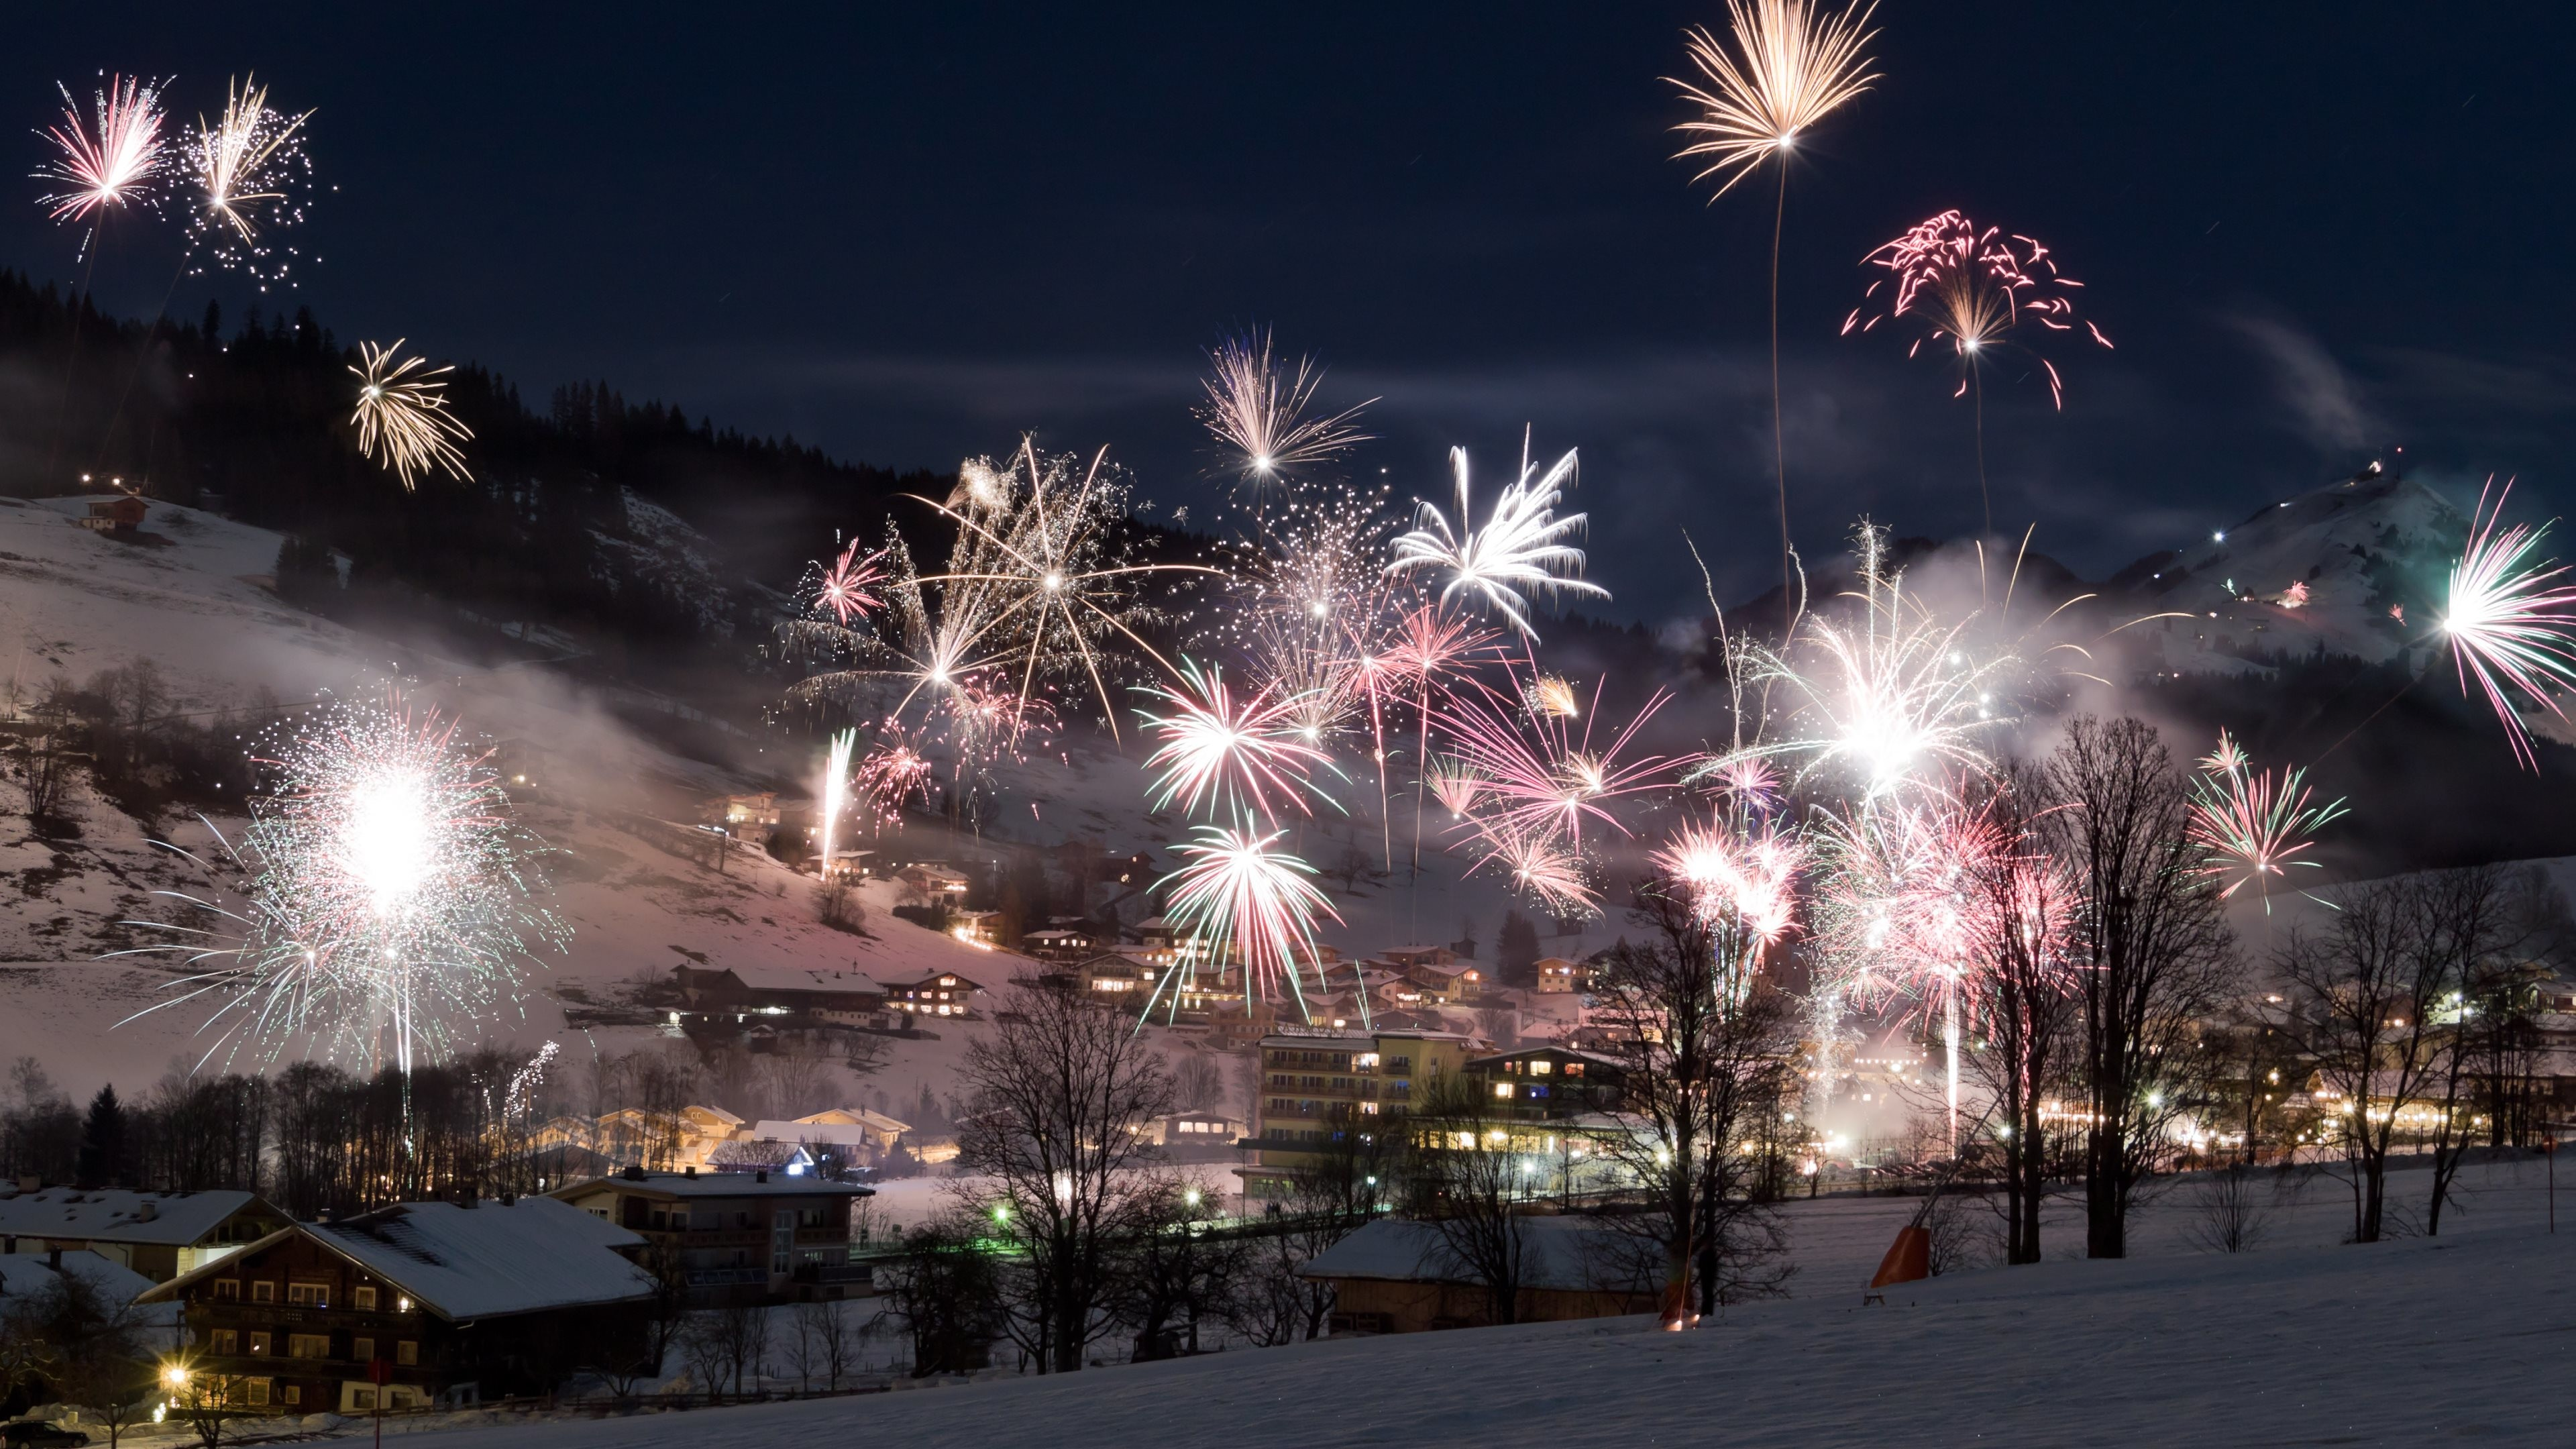 New Years Eve Wallpaper (73+ images)  New Years Eve W...